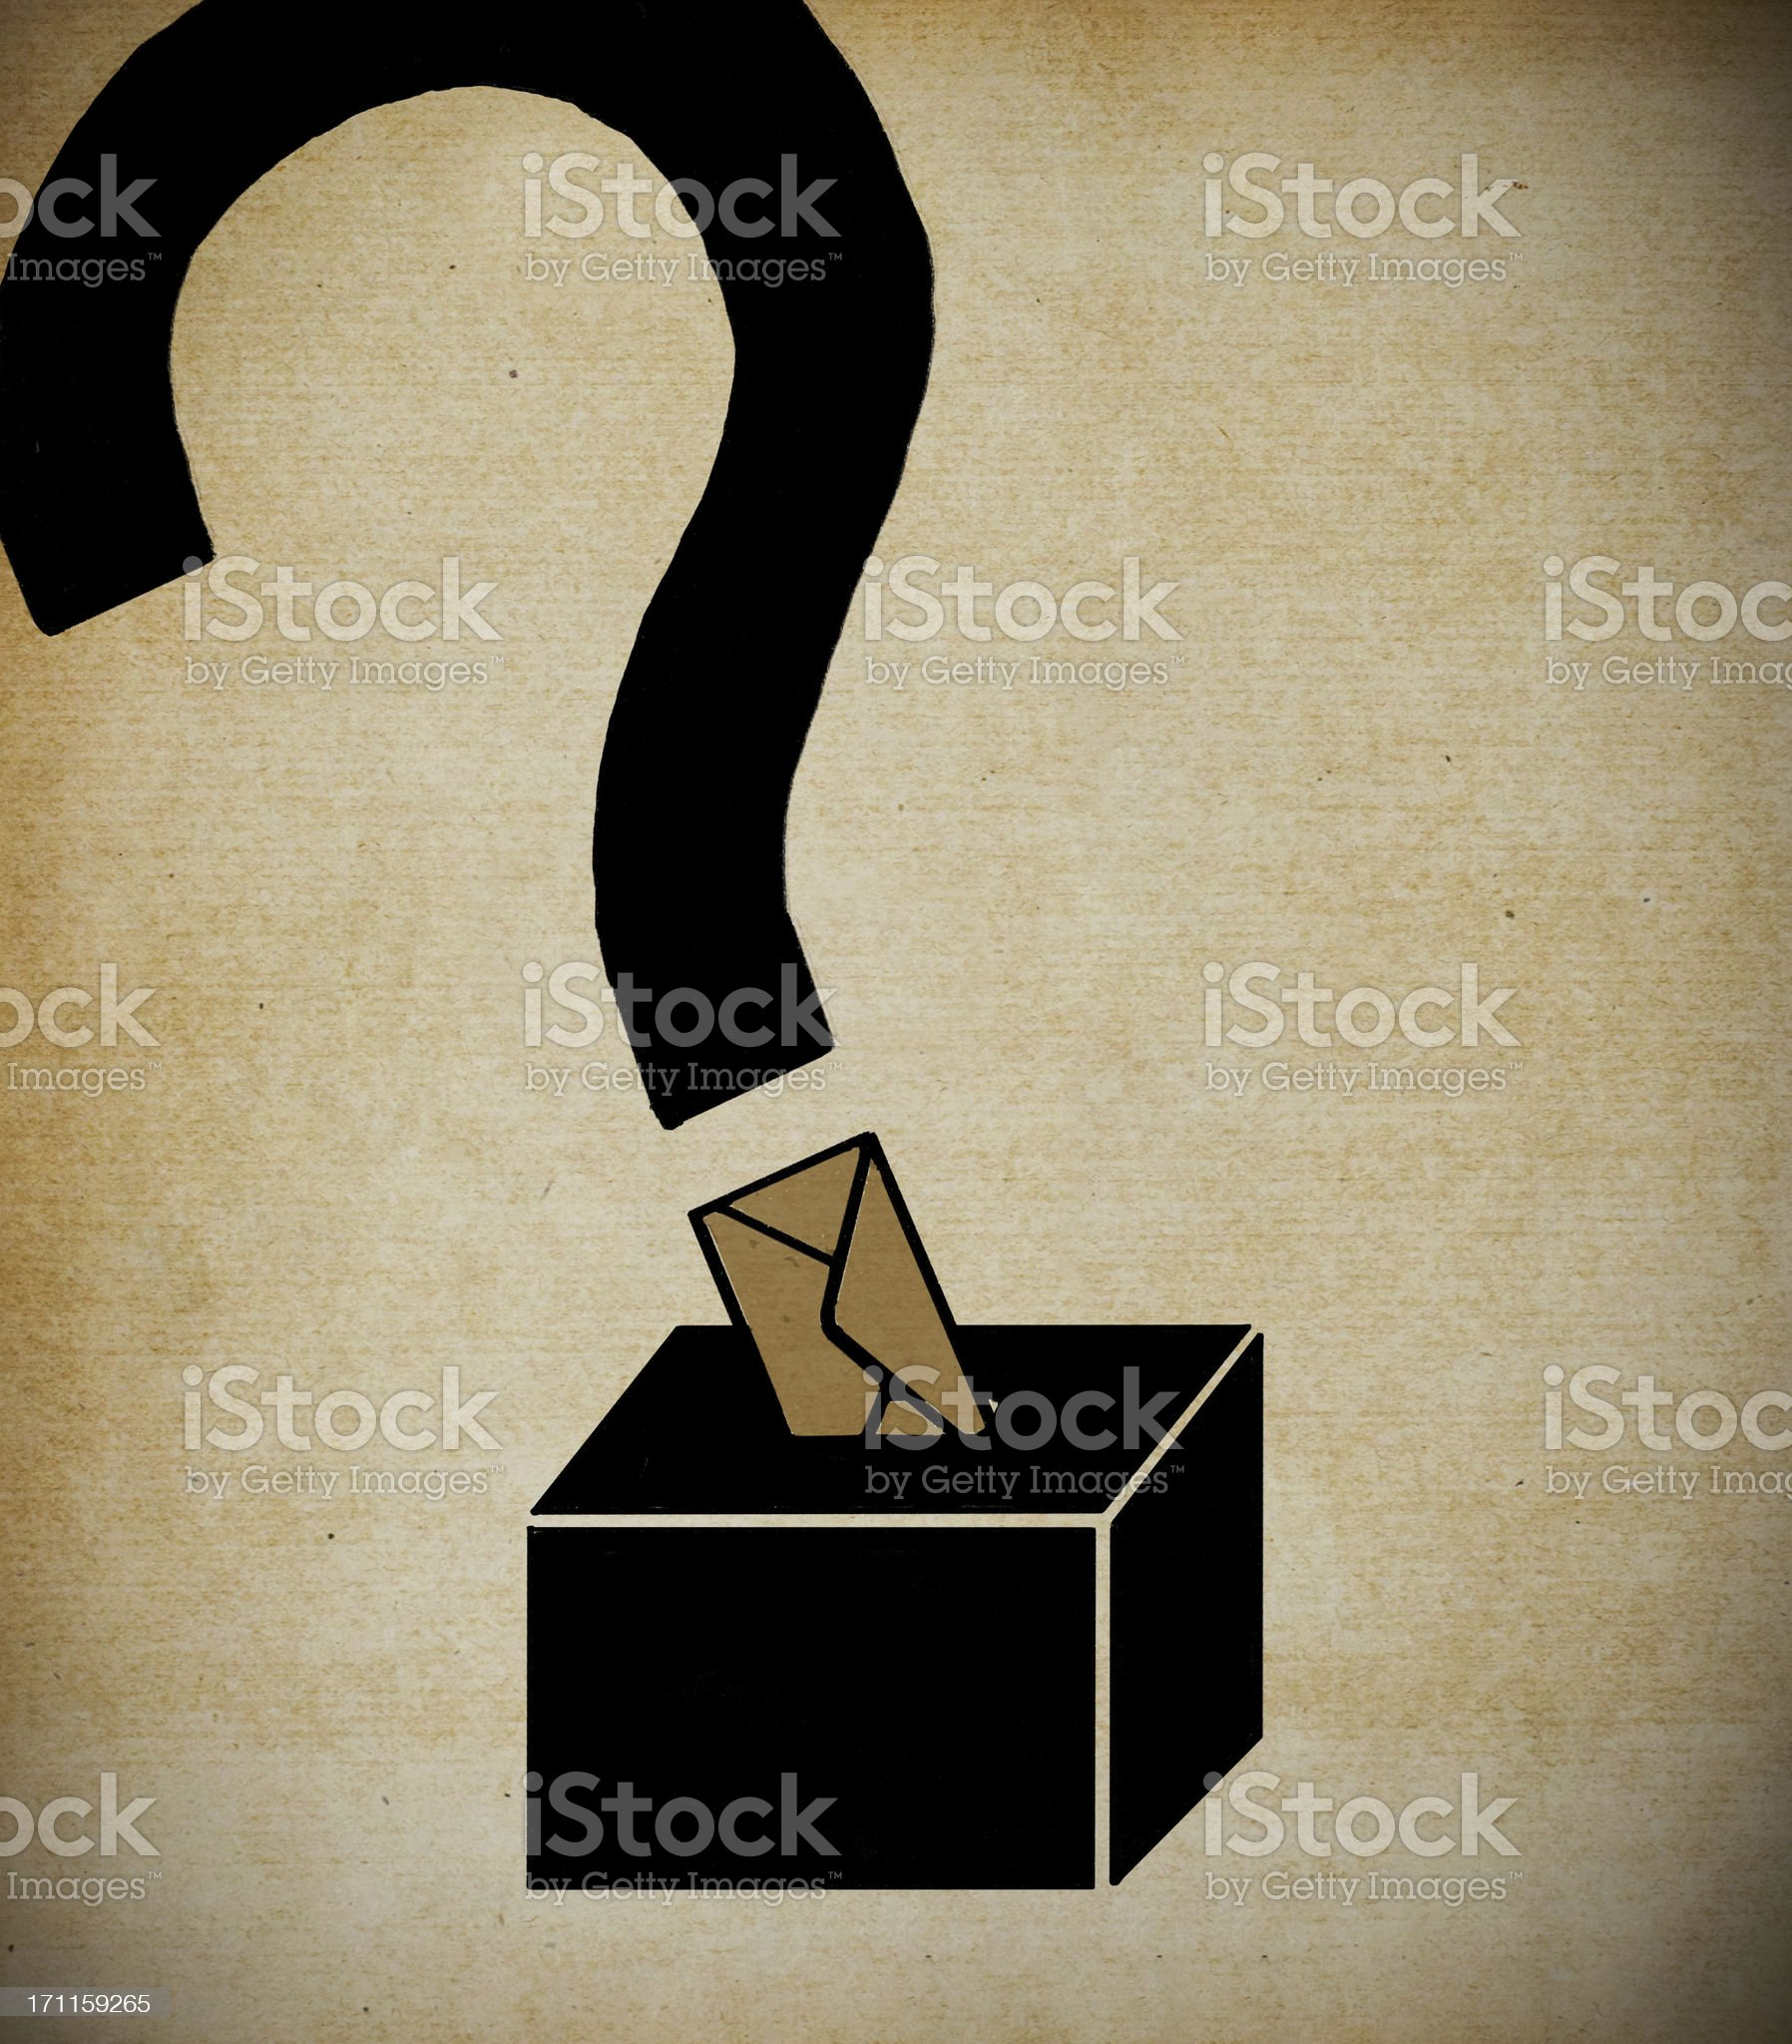 Black ballot box with question mark rising from top slot royalty-free stock vector art